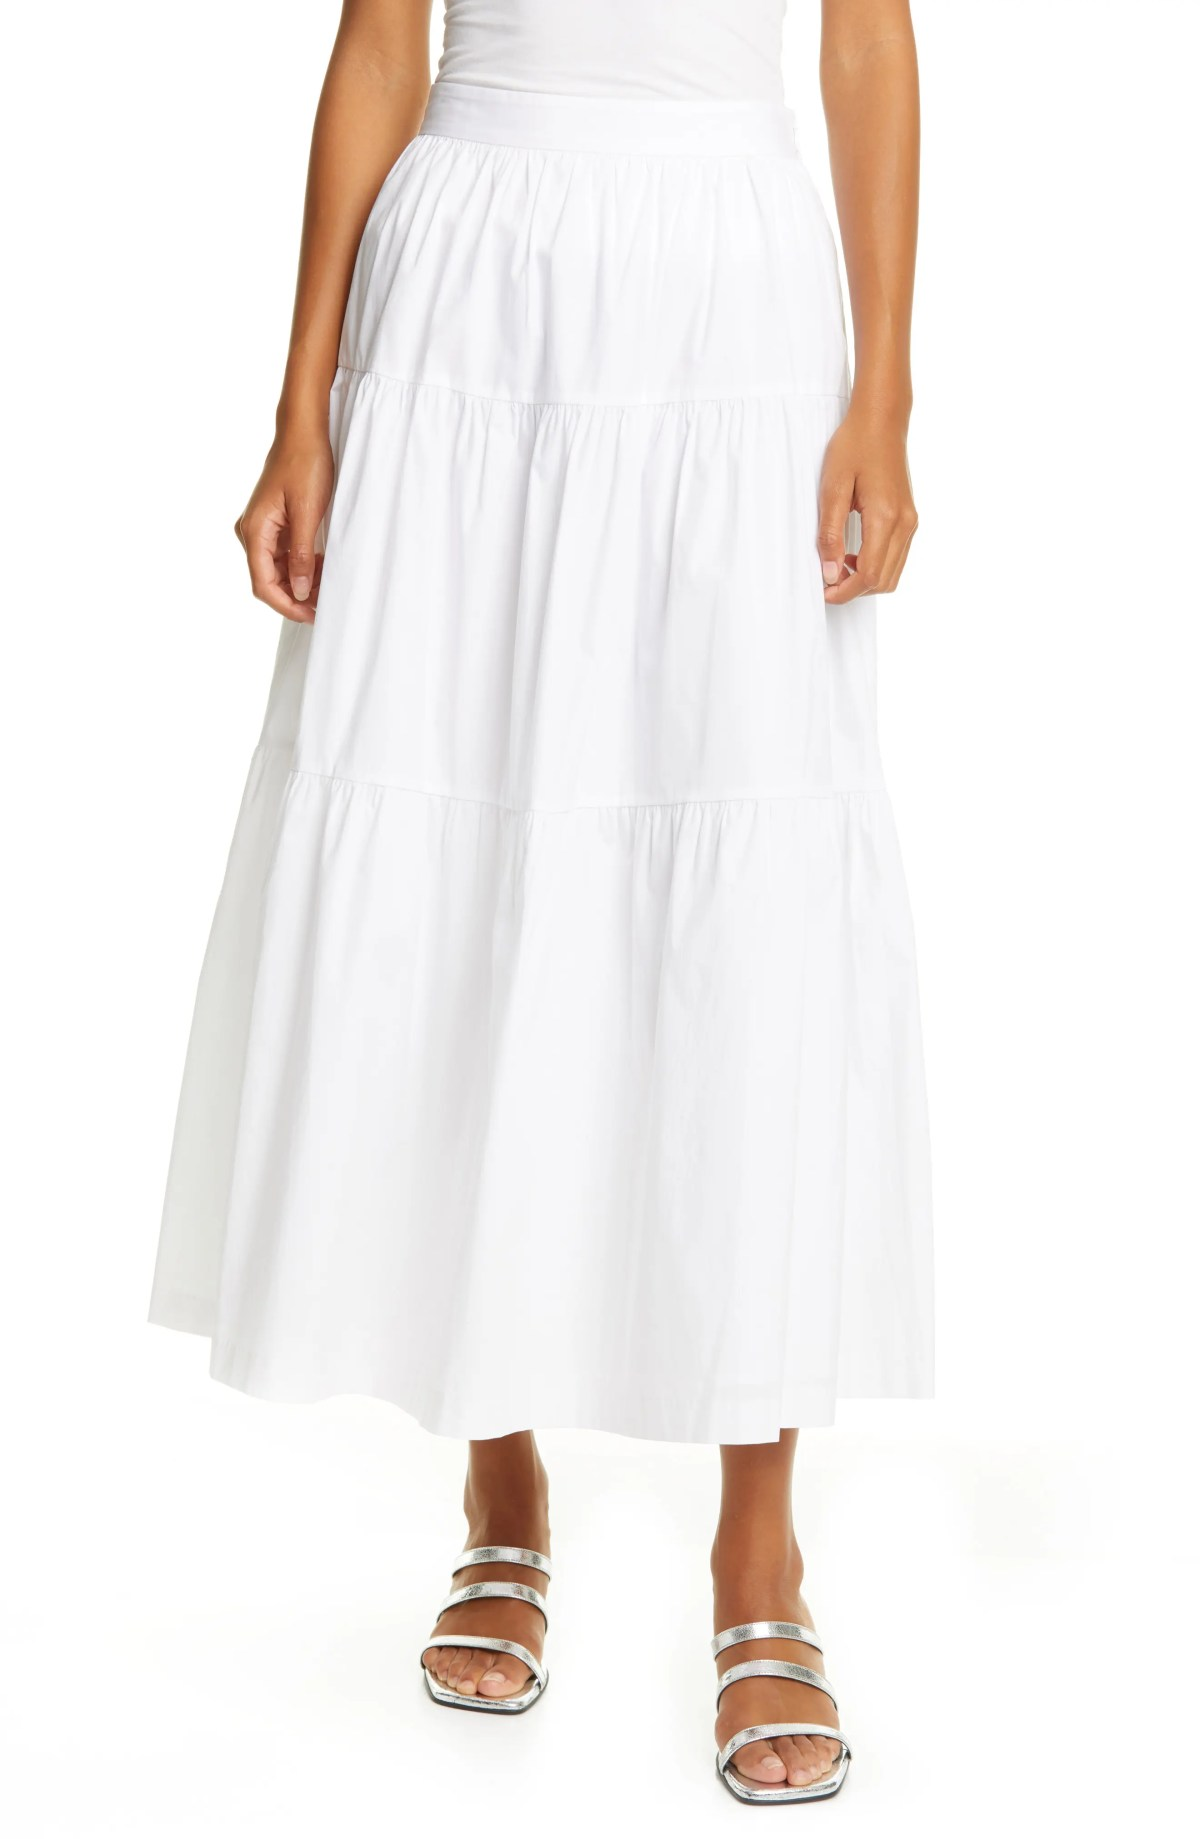 STAUD Tiered Stretch Cotton Maxi Skirt, Main, color, White